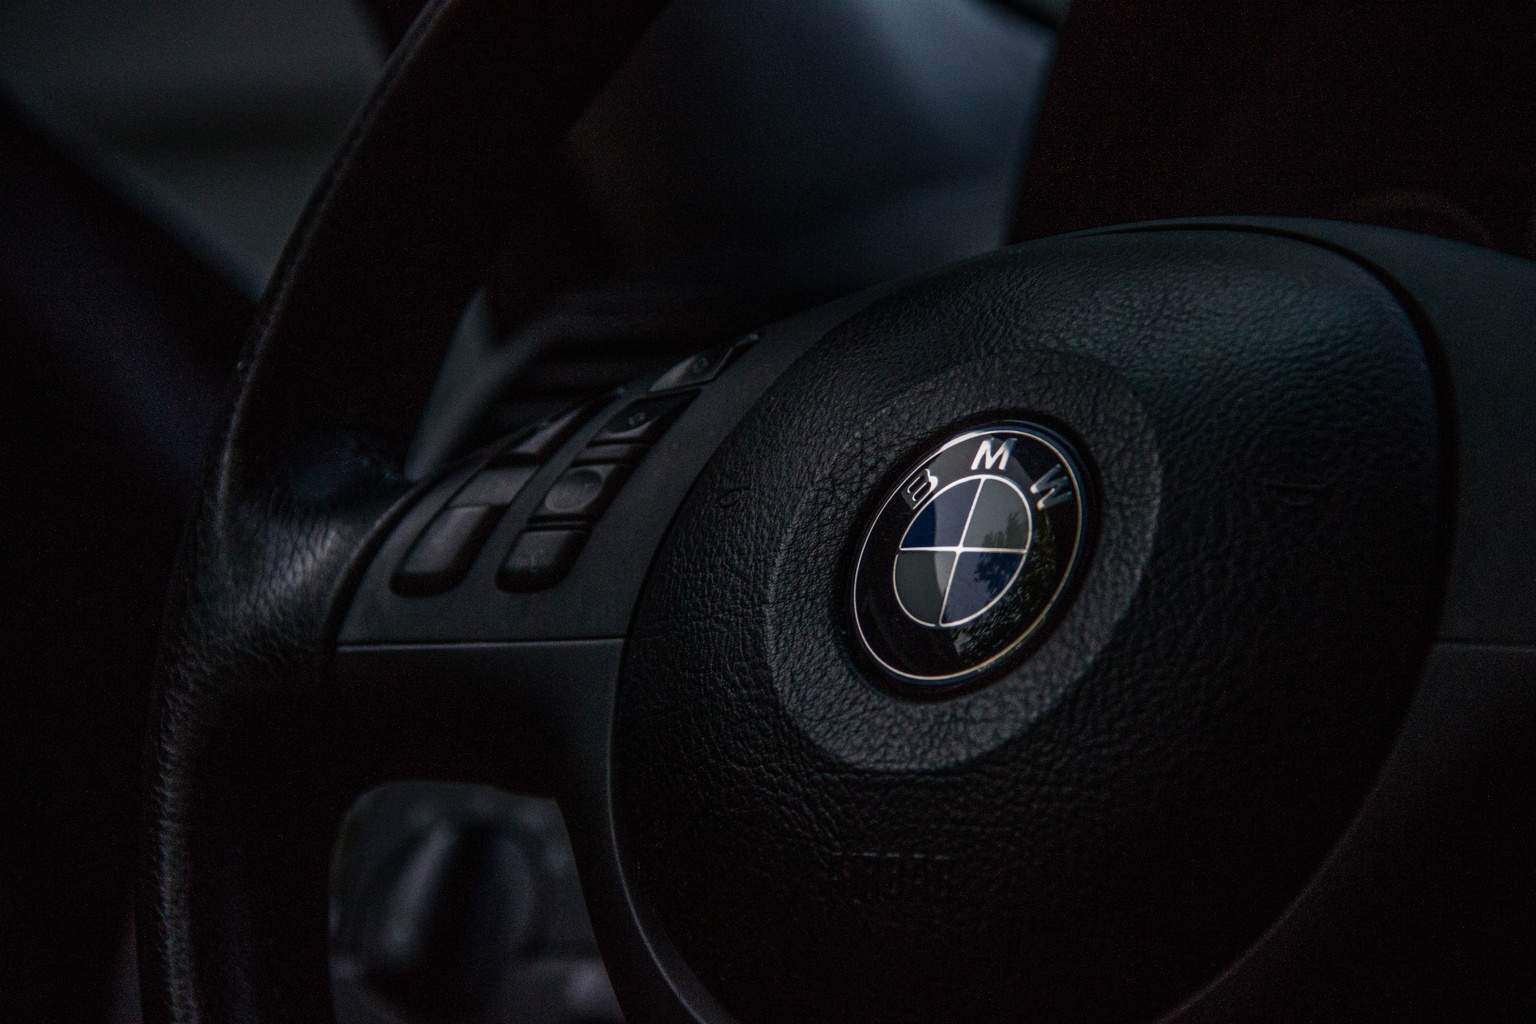 BMW Steering Wheel - Uniseal Dealer Services